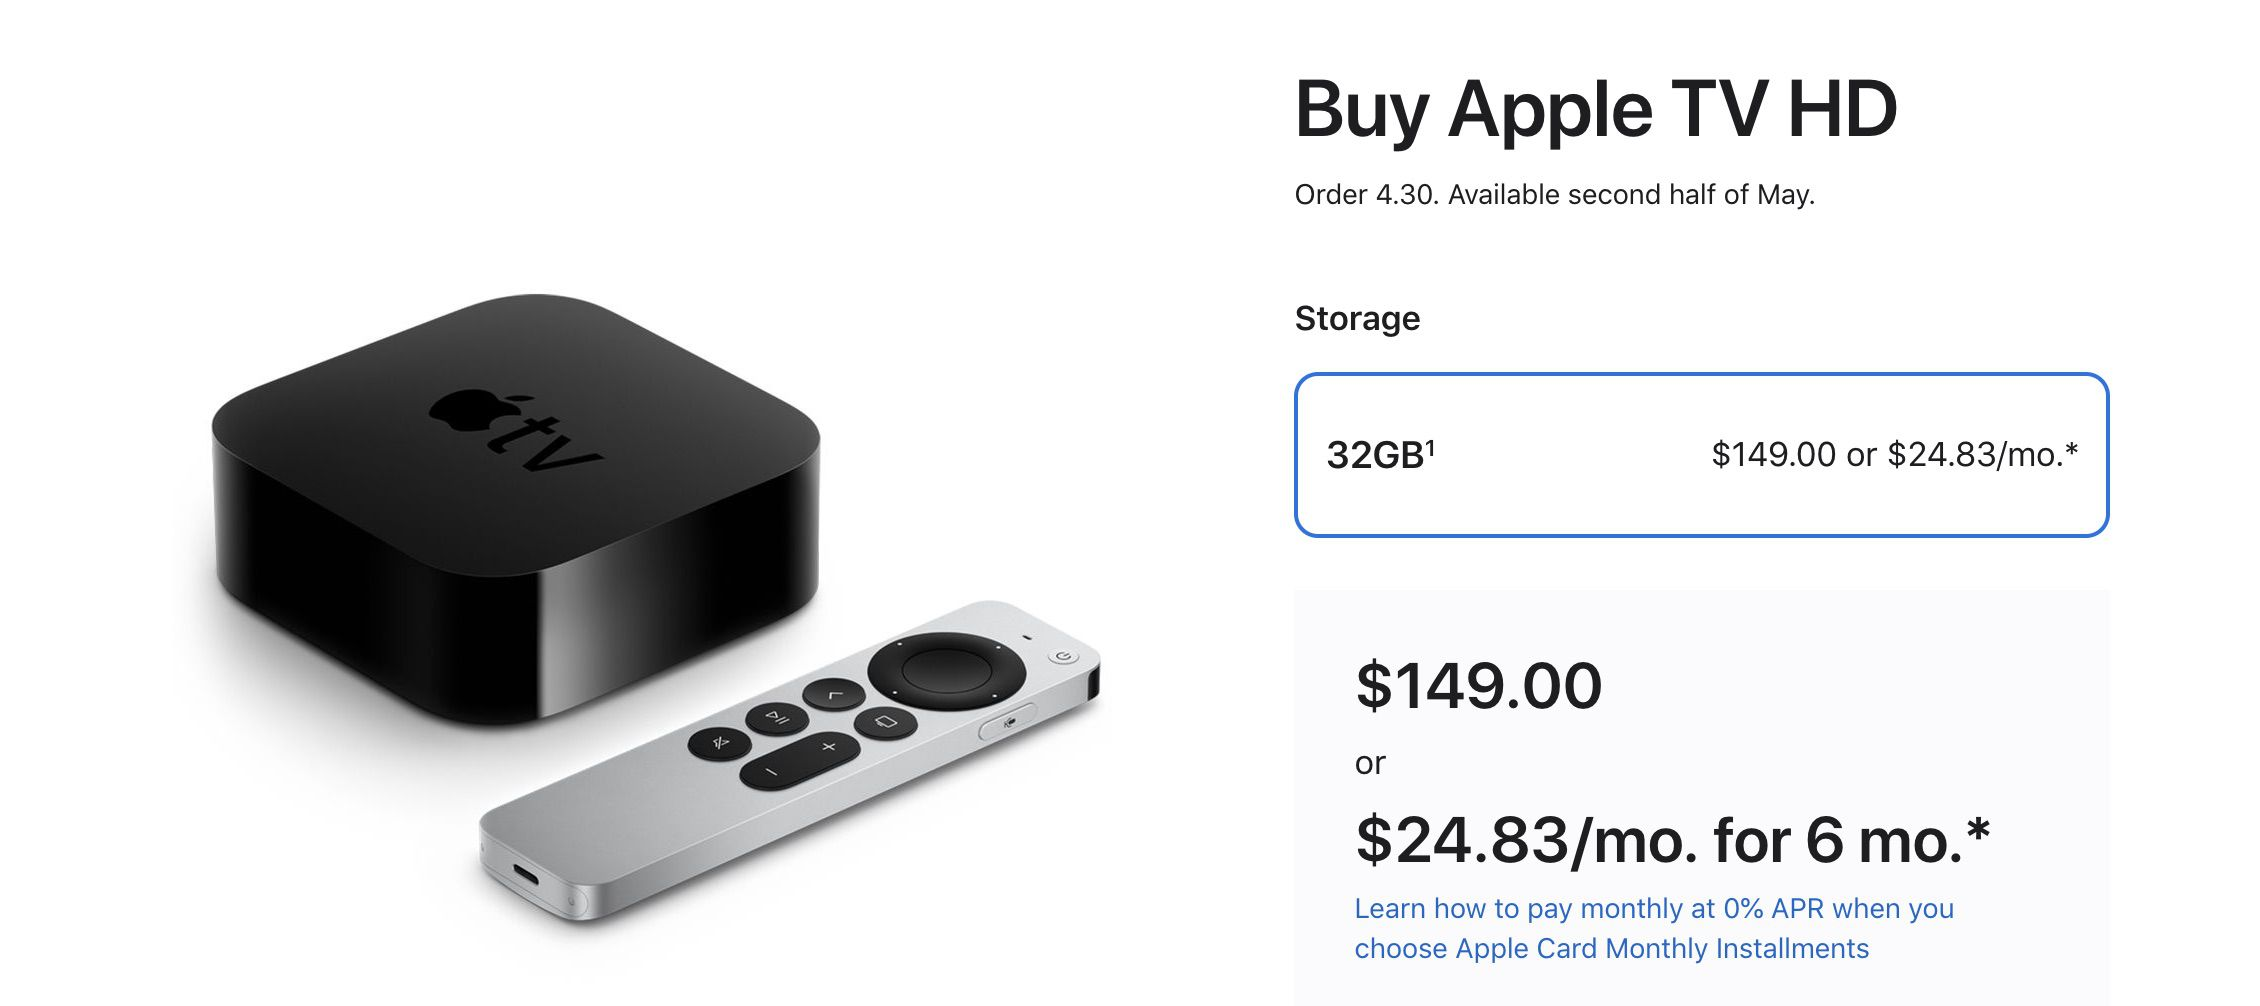 photo of Apple to Sell Apple TV HD Bundled With New Siri Remote for $149 image